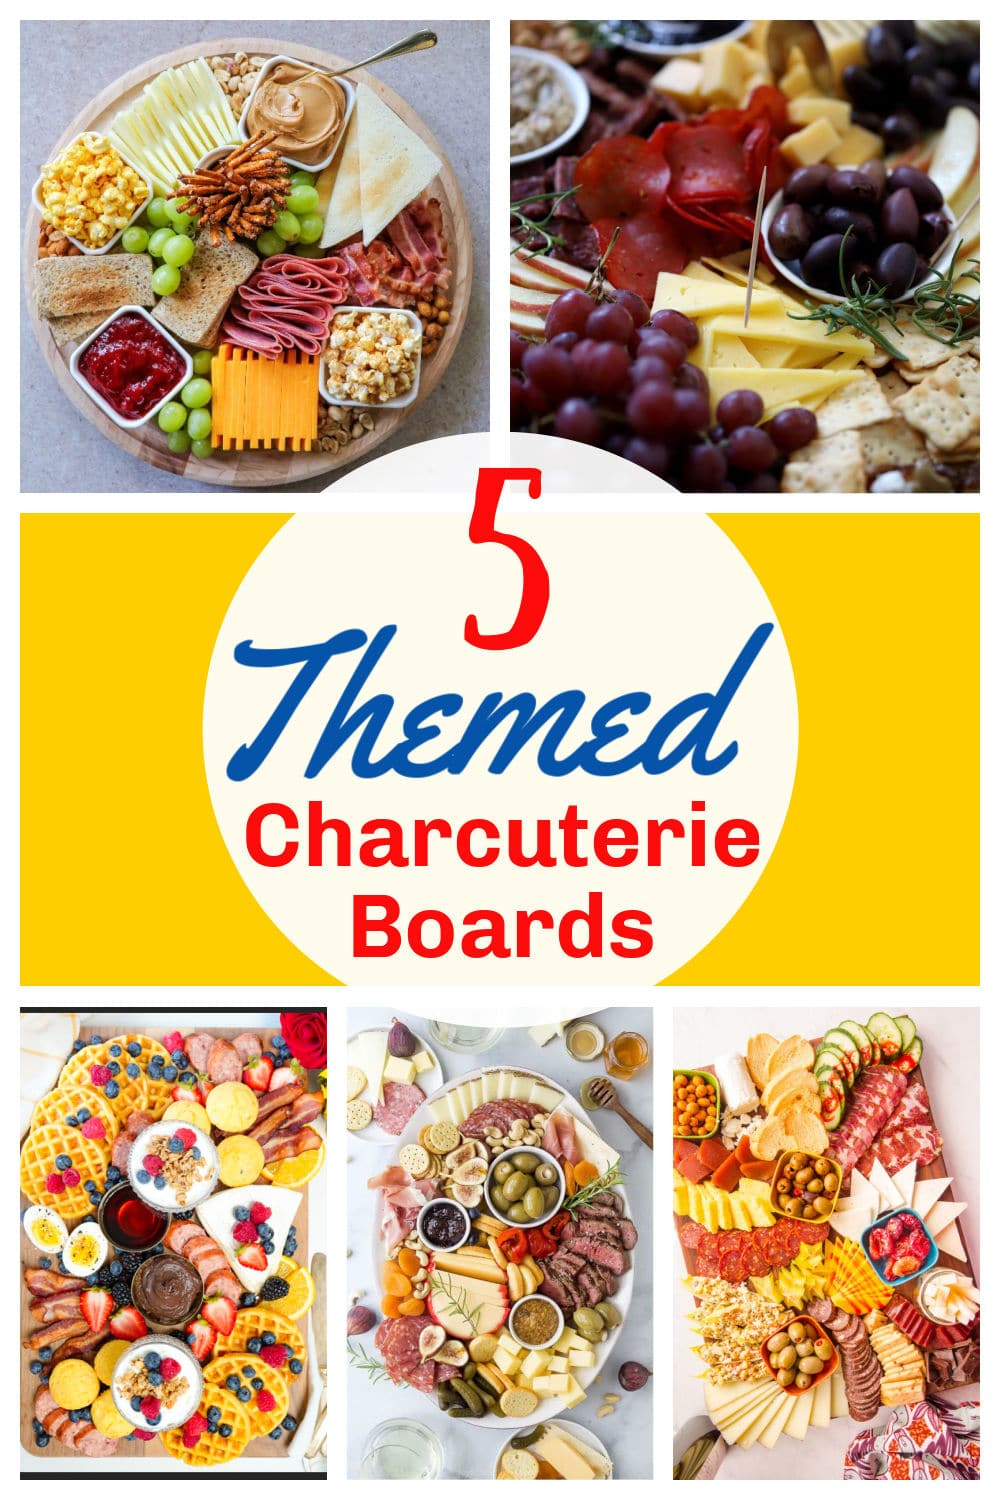 Charcuterie Boards are so fun to have for every occasion! I've got five themed boards that will fit any party you've got coming up. The key ingredients to charcuterie boards are meat, cheese, fruit, spreads and crackers and these themes will make all of those come to life! via @foodhussy